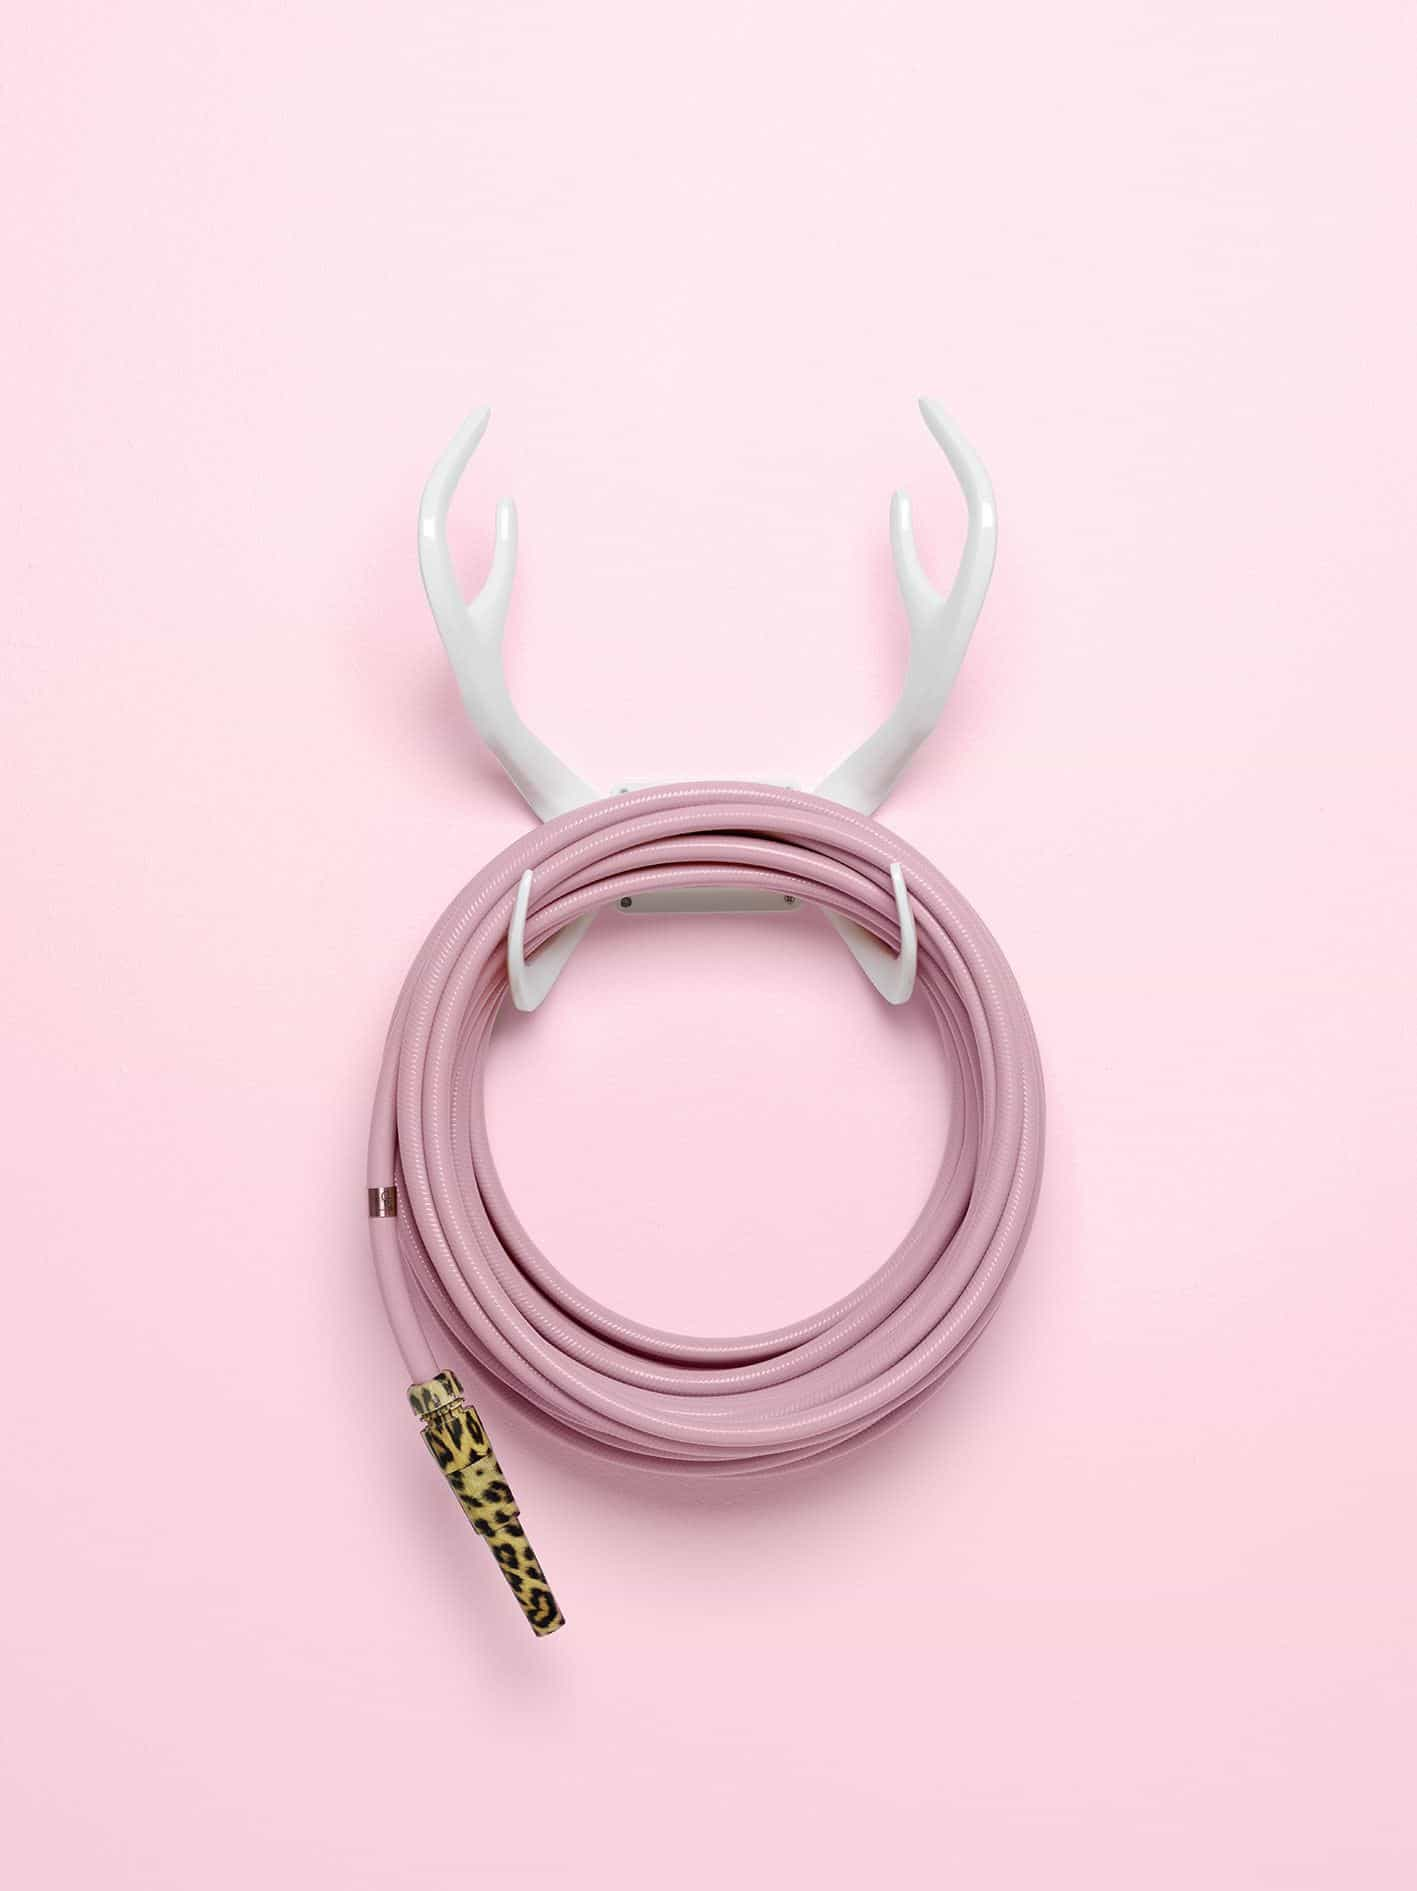 Garden Glory - Stylish garden equipment - pink garden hose with leopard print nozzle wall-mounted on white antlers